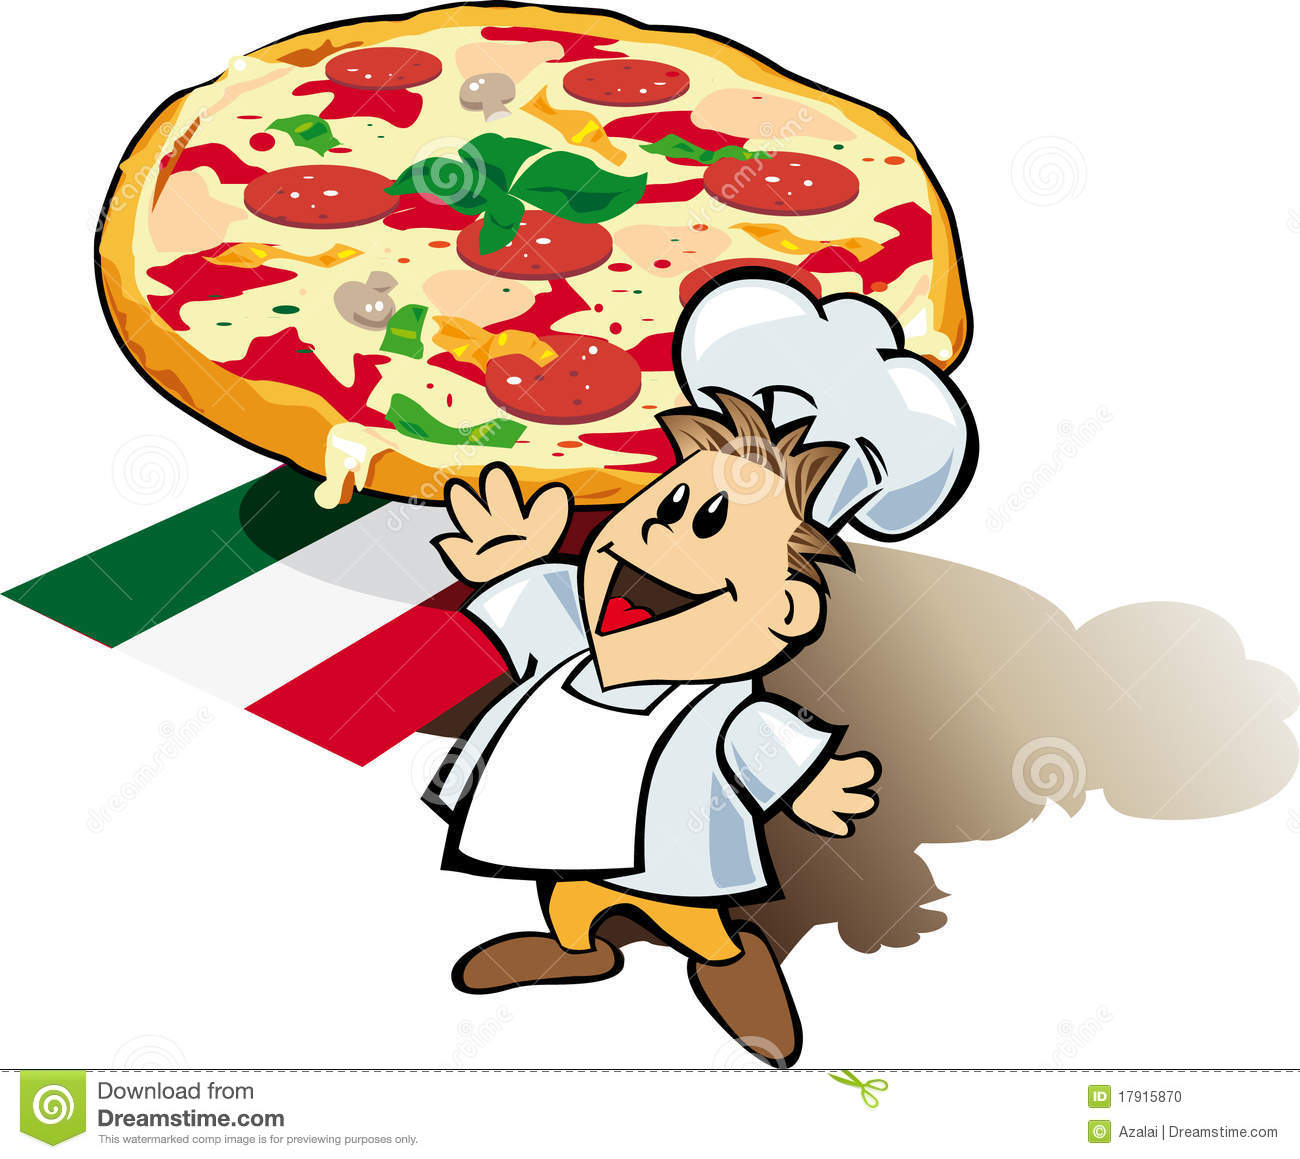 Italian Chef Cook With Pizza Giant Stock Photo - Image: 17915870